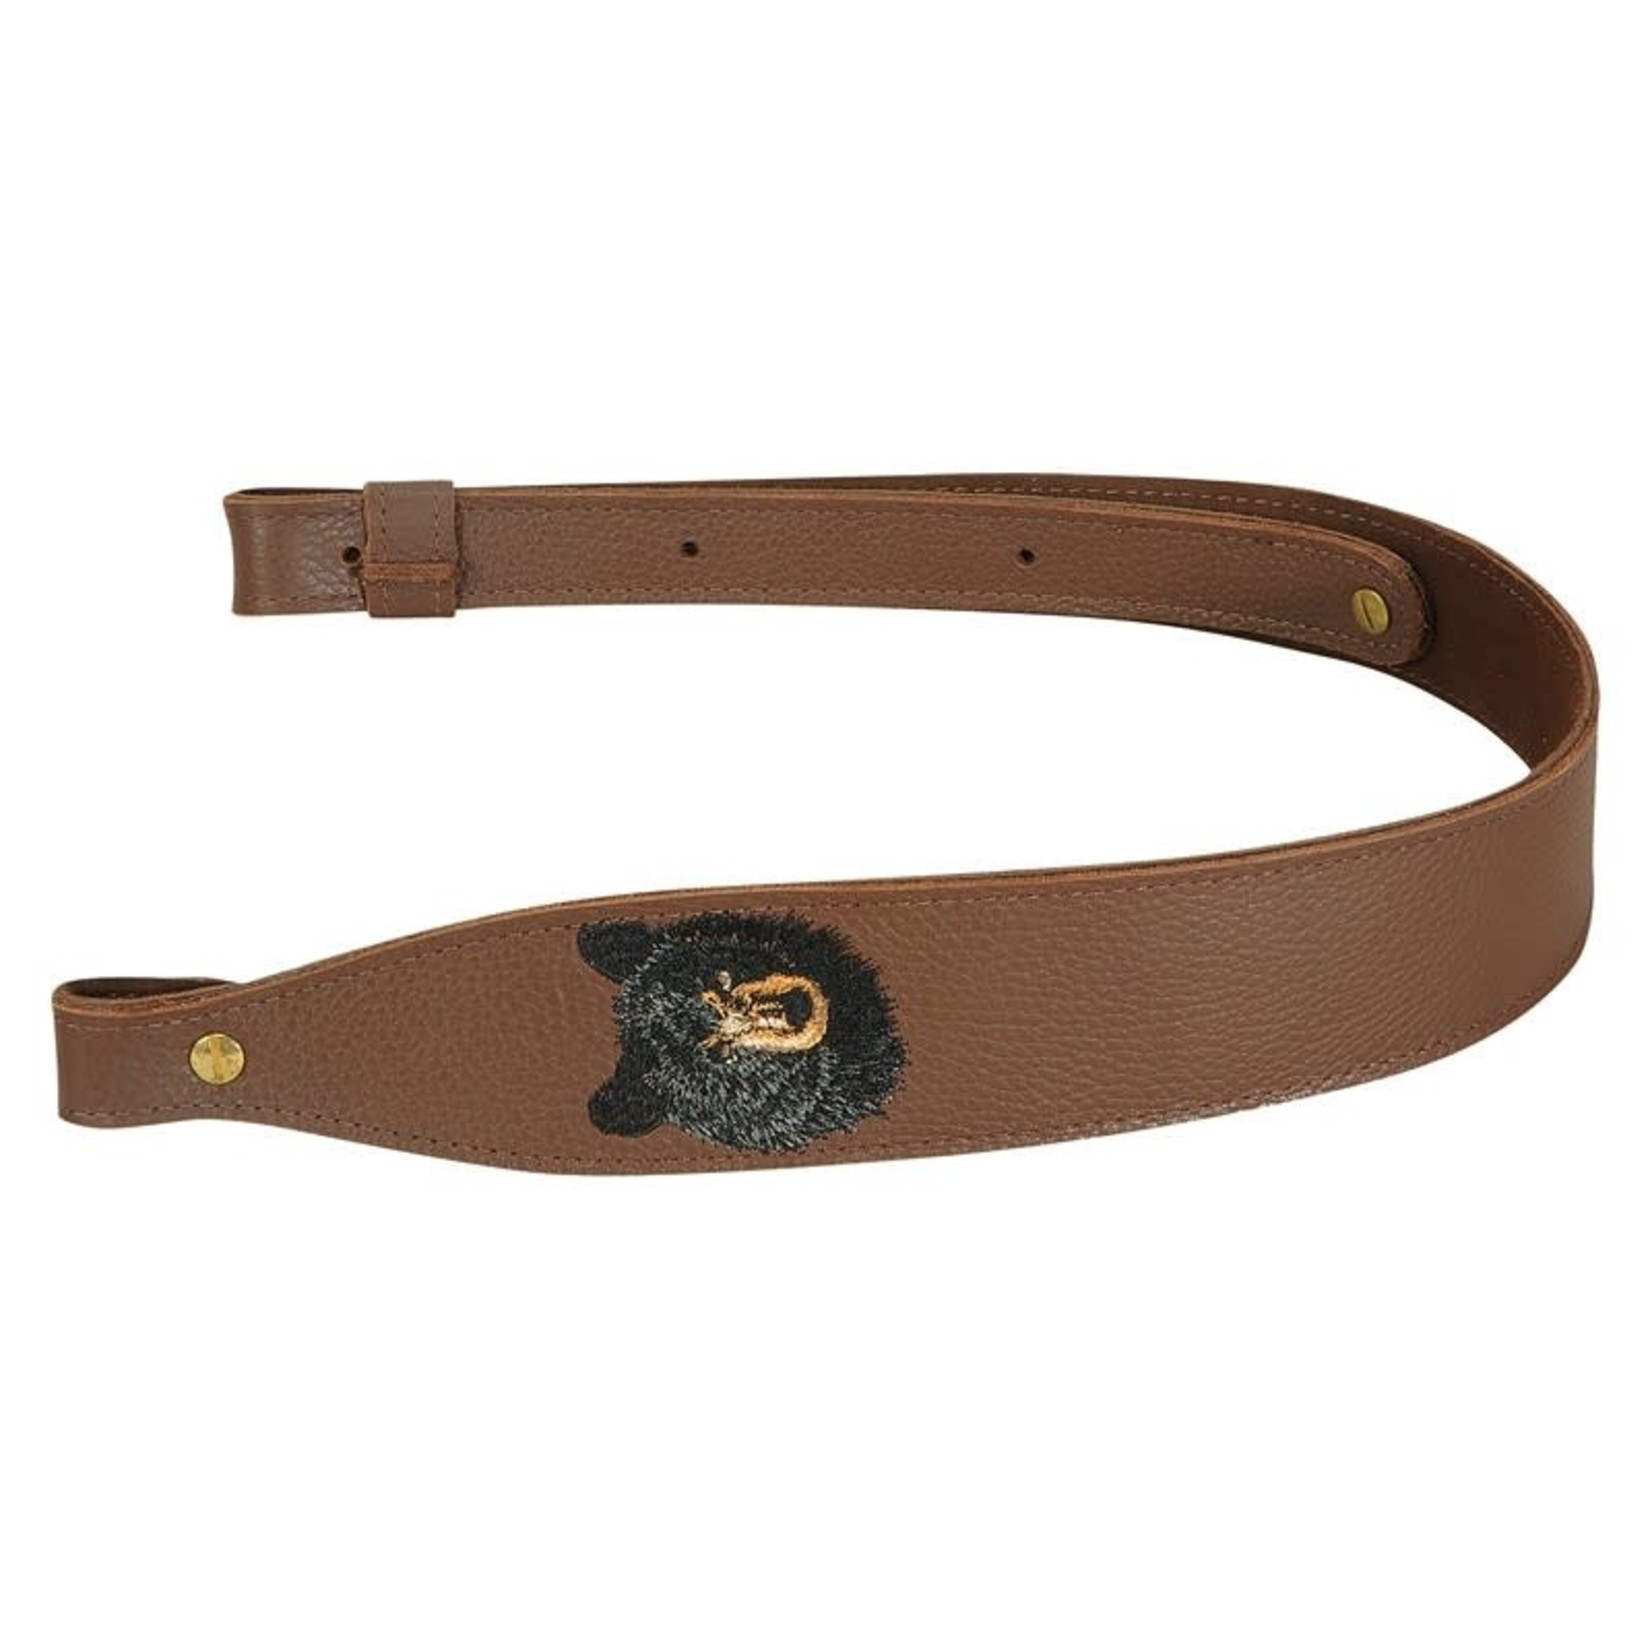 Levy's Levy's Sling - Brown Garment Leather Rifle Sling – SNG20EB-BRN